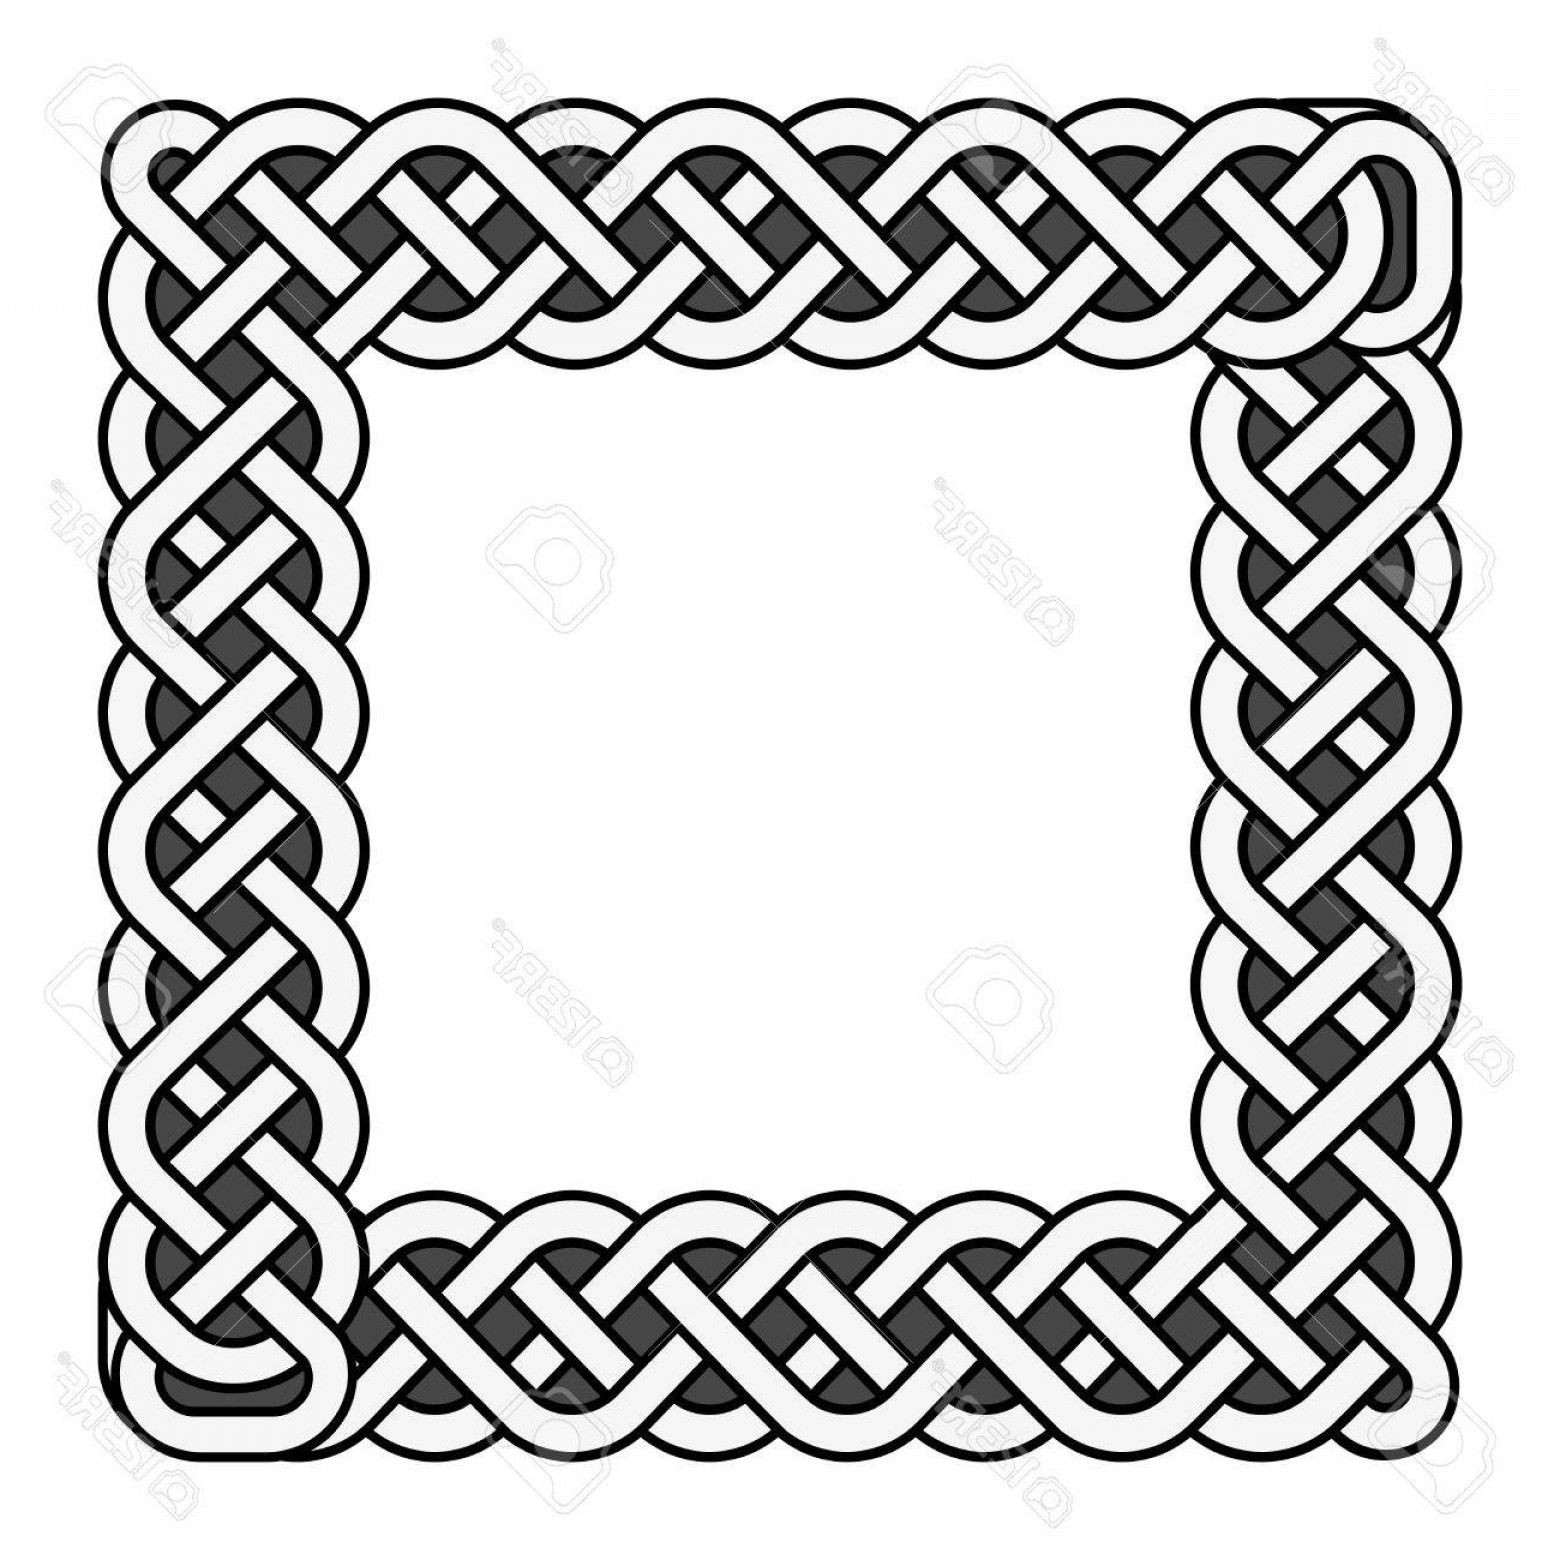 Medieval Frames Vector: Photostock Vector Square Celtic Knots Vector Medieval Frame In Black And White Traditional Ethnic Irish Knot Border Il